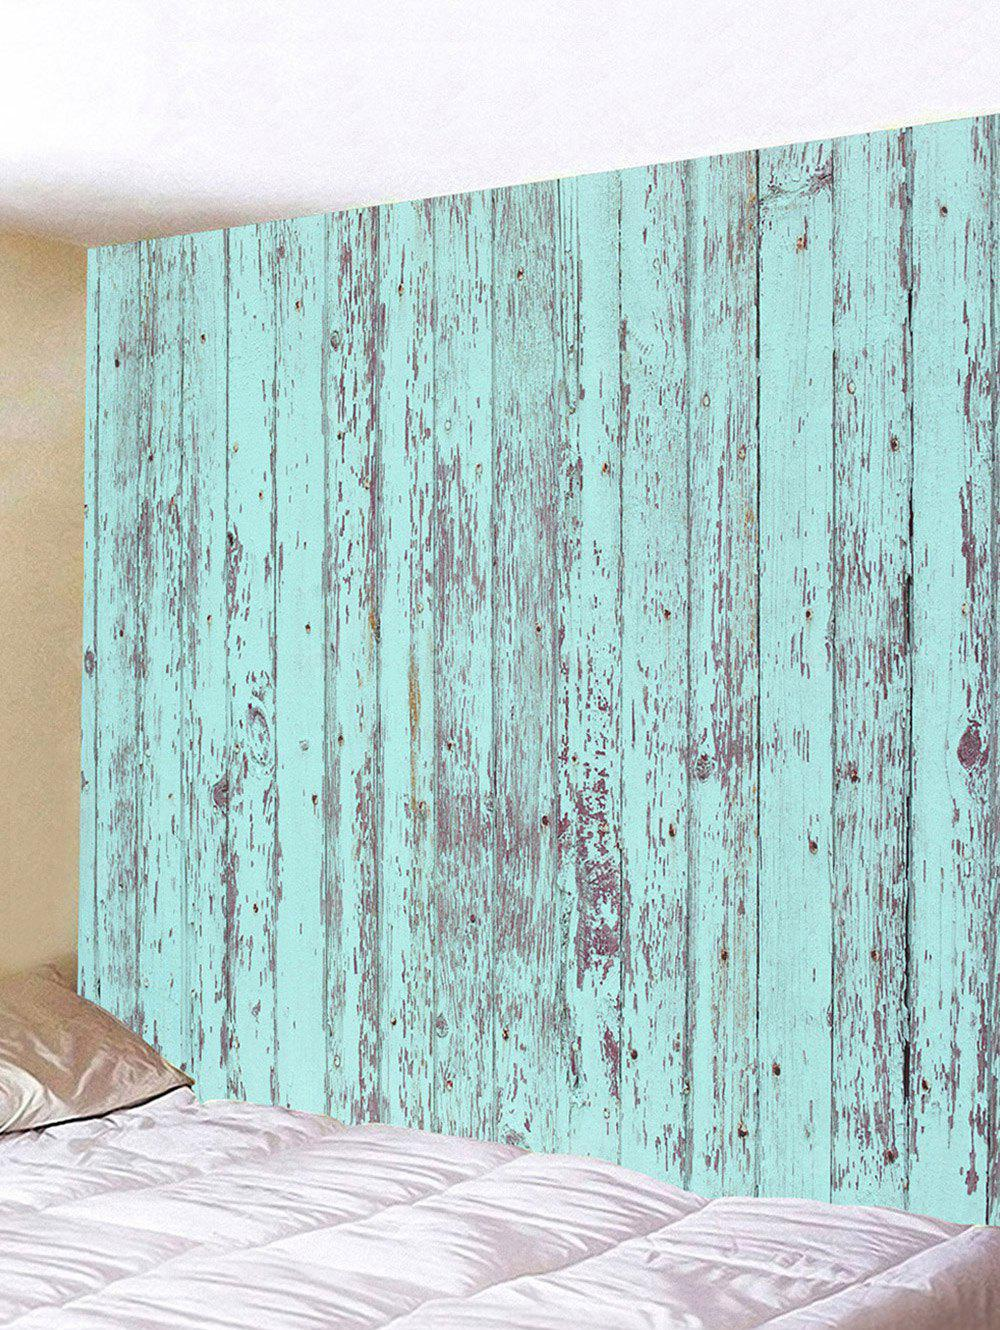 Paint Peeling off Wooden Plank Print Wall Tapestry